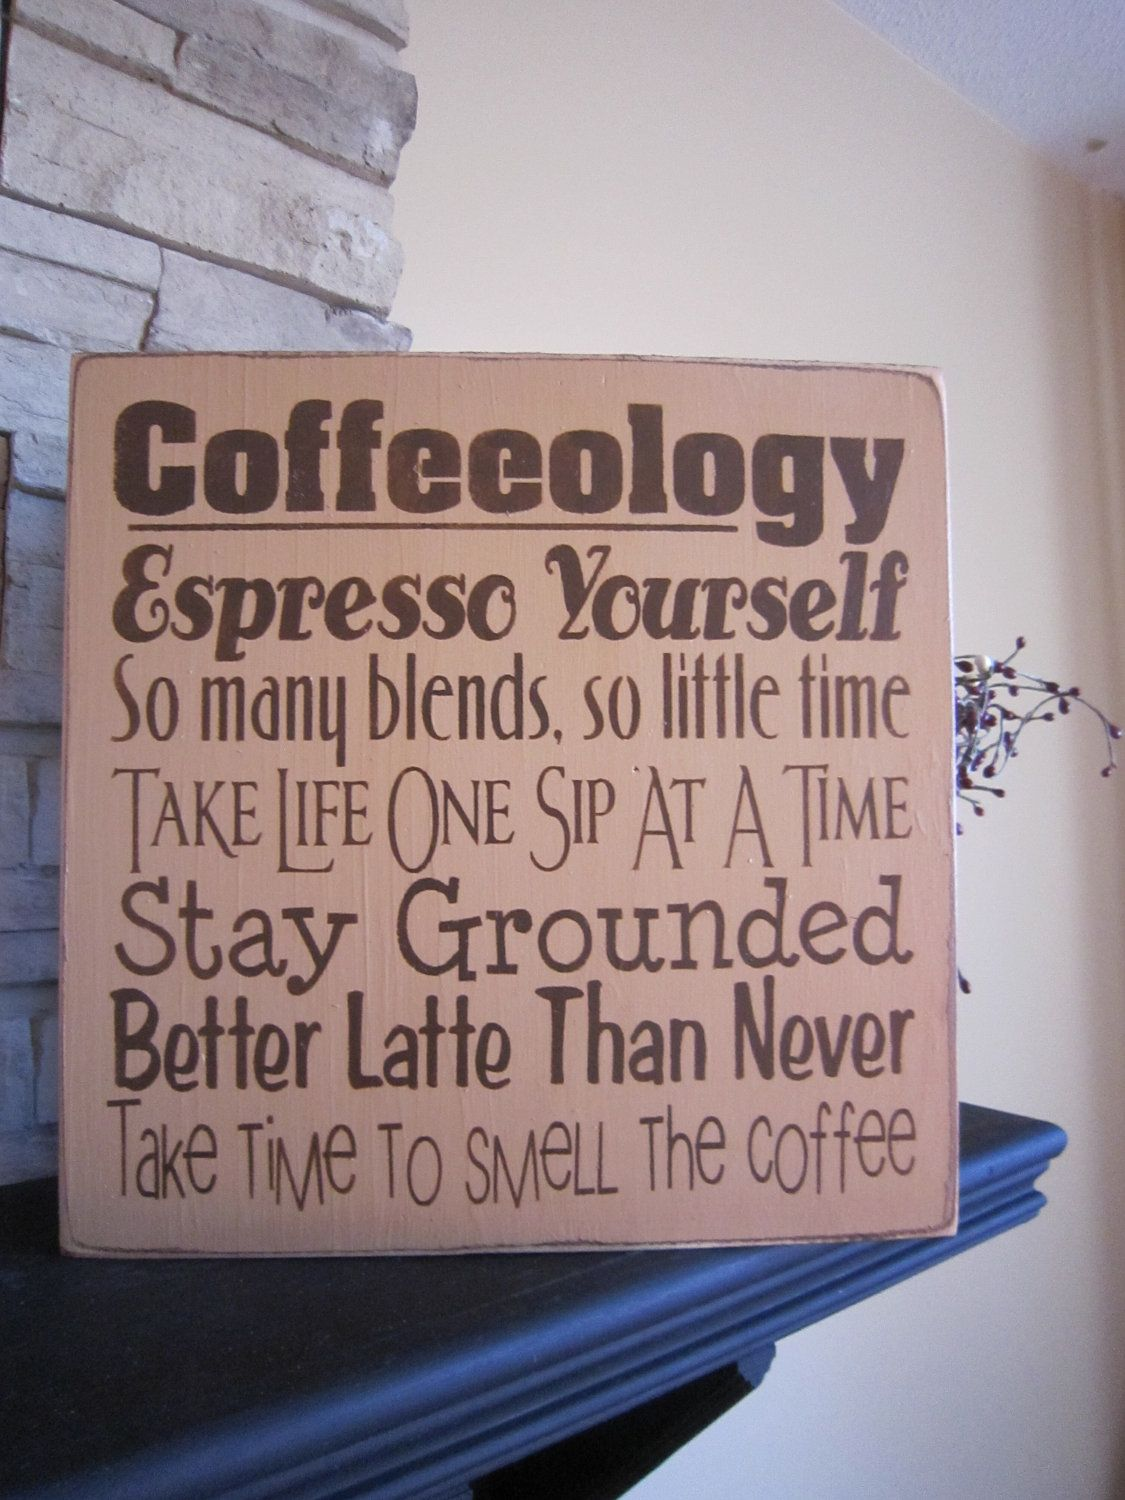 Coffee Latte Art Quotes Coffeeology Espresso Yourself Stay Grounded Country